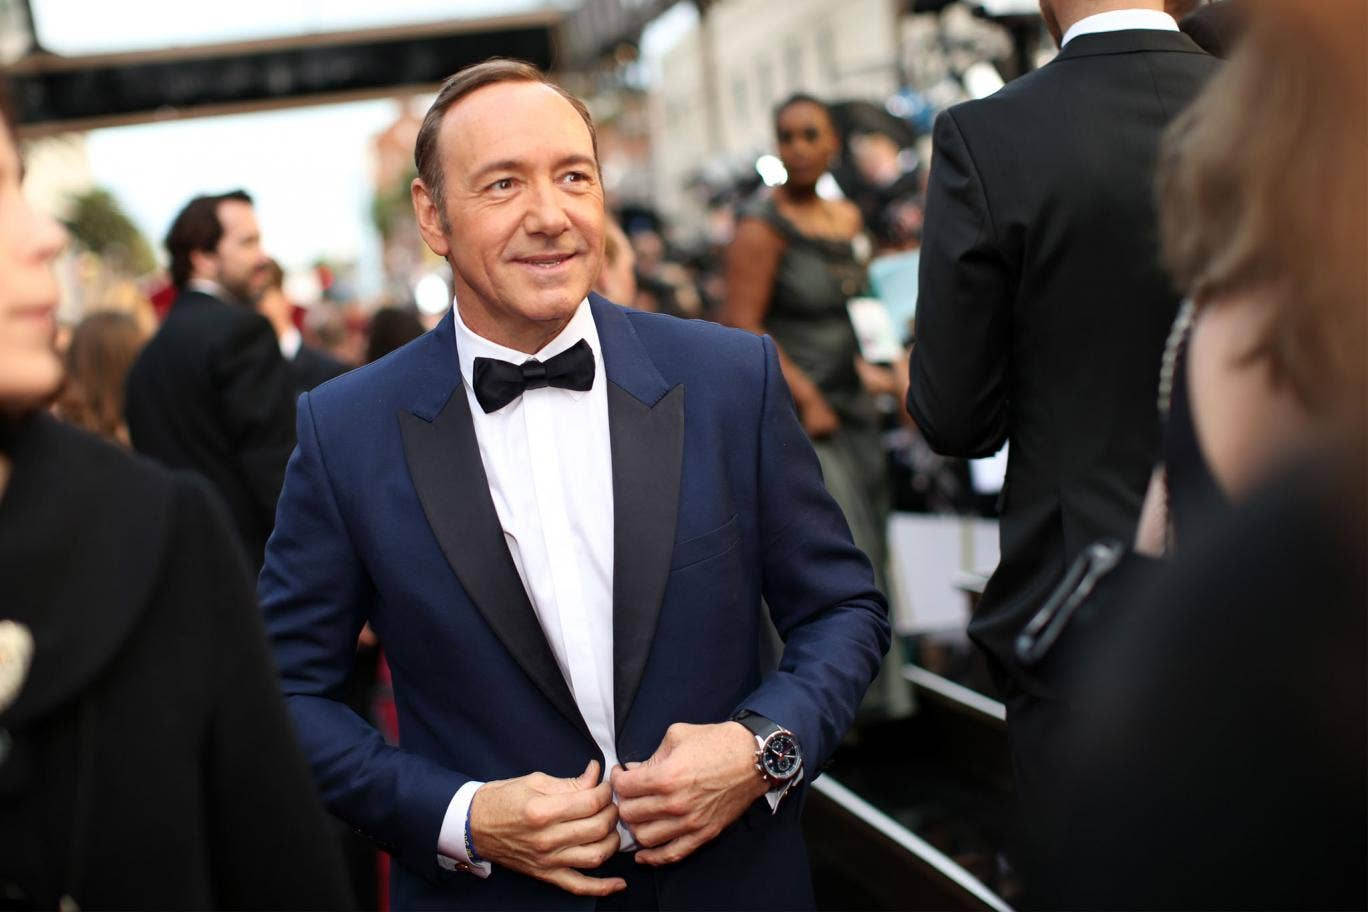 Kevin Spacey at the Academy Awards in 2014